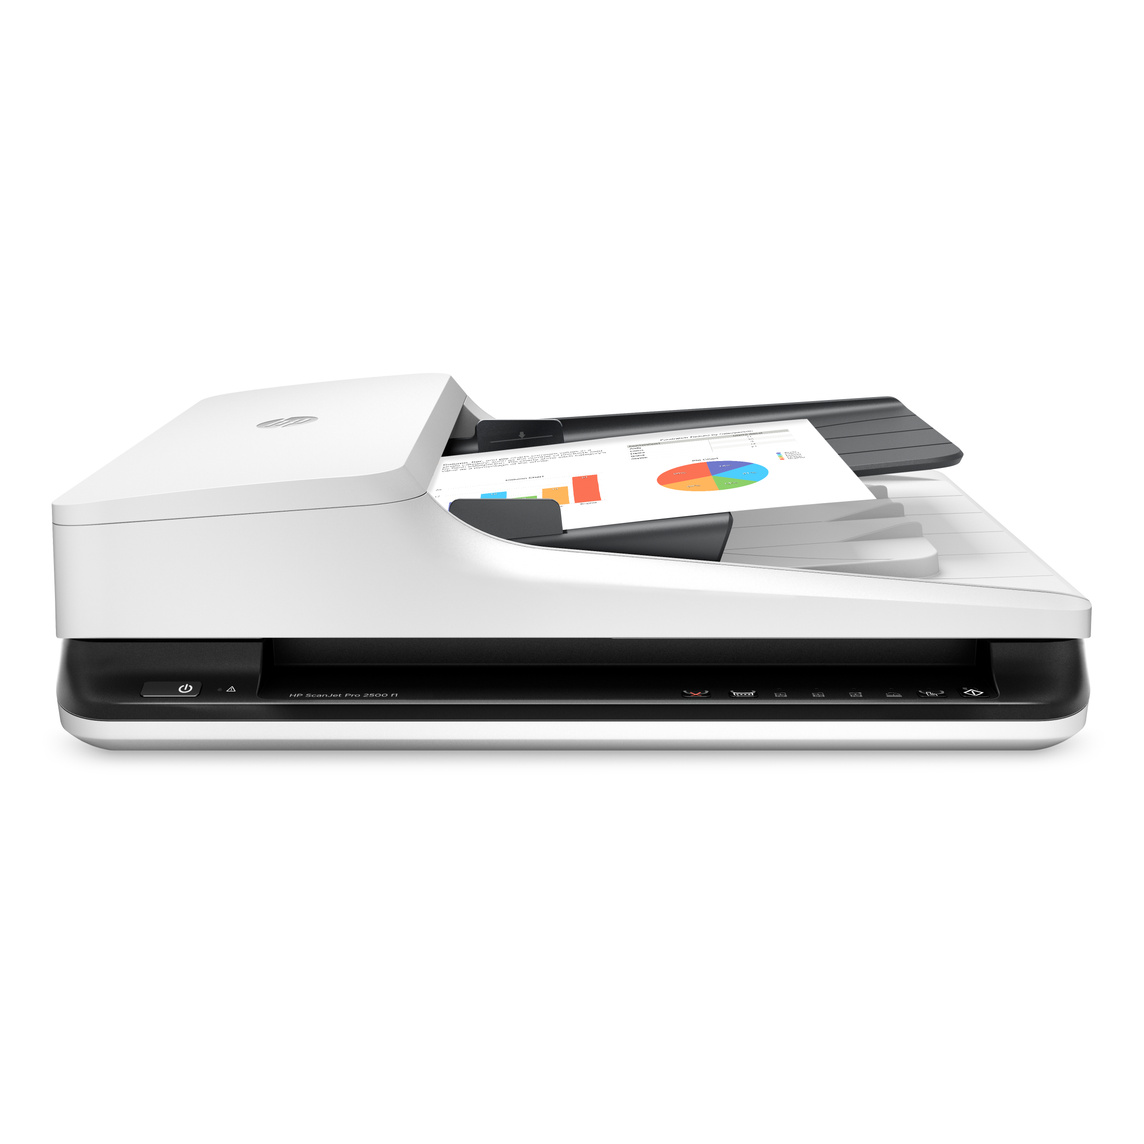 HP ScanJet Pro 2500 f1 Flatbed Desktop Scanner